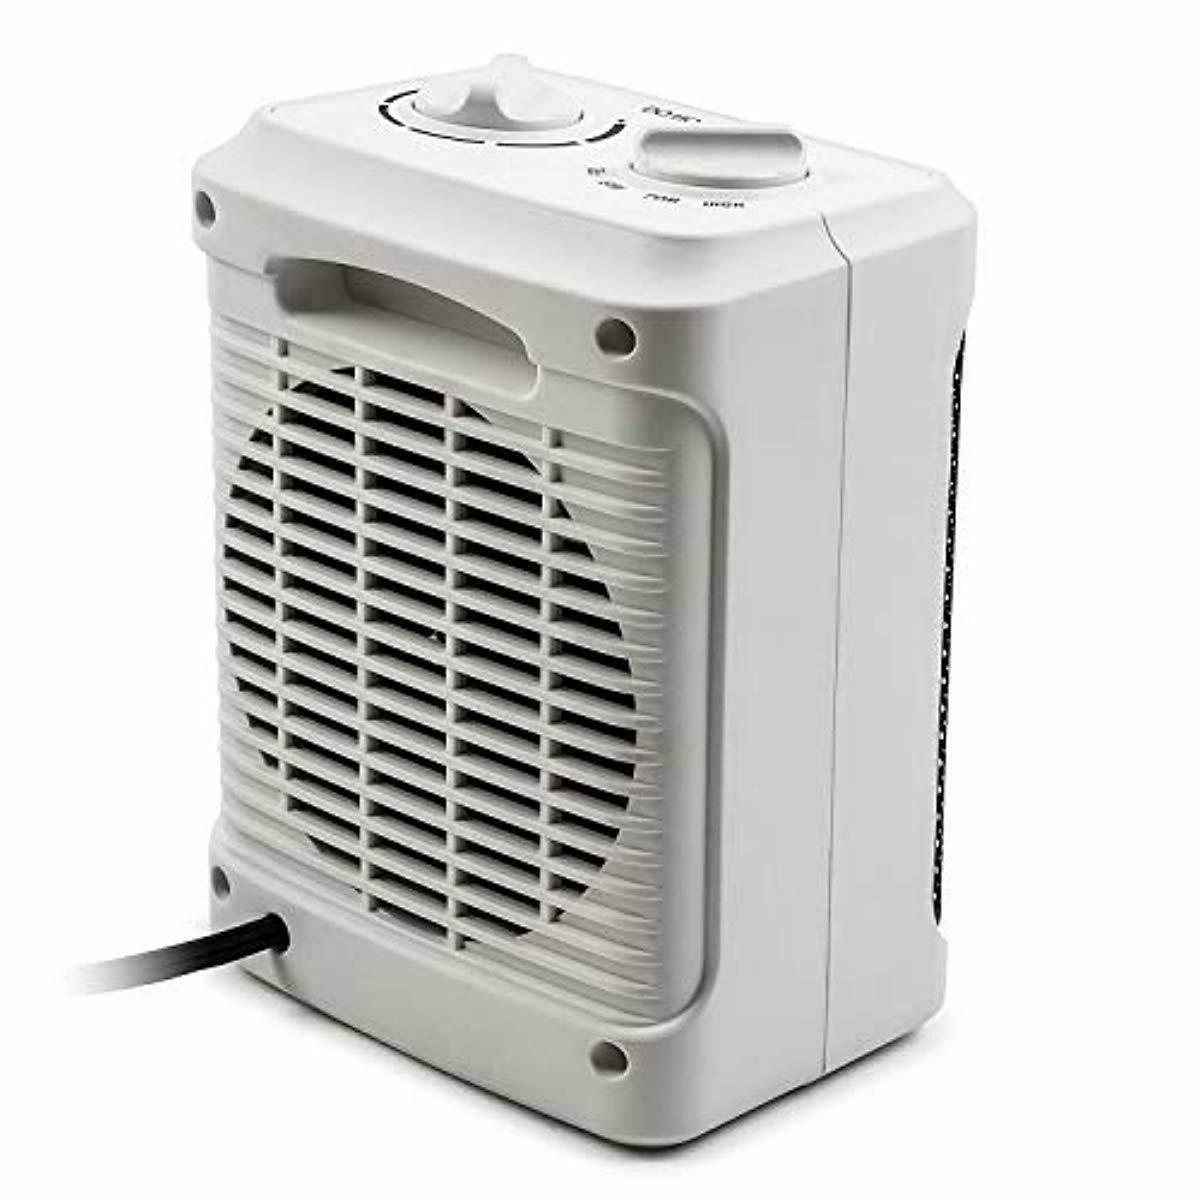 1500W Ceramic Space Heater with Operating Modes and Adjustable Thermostat